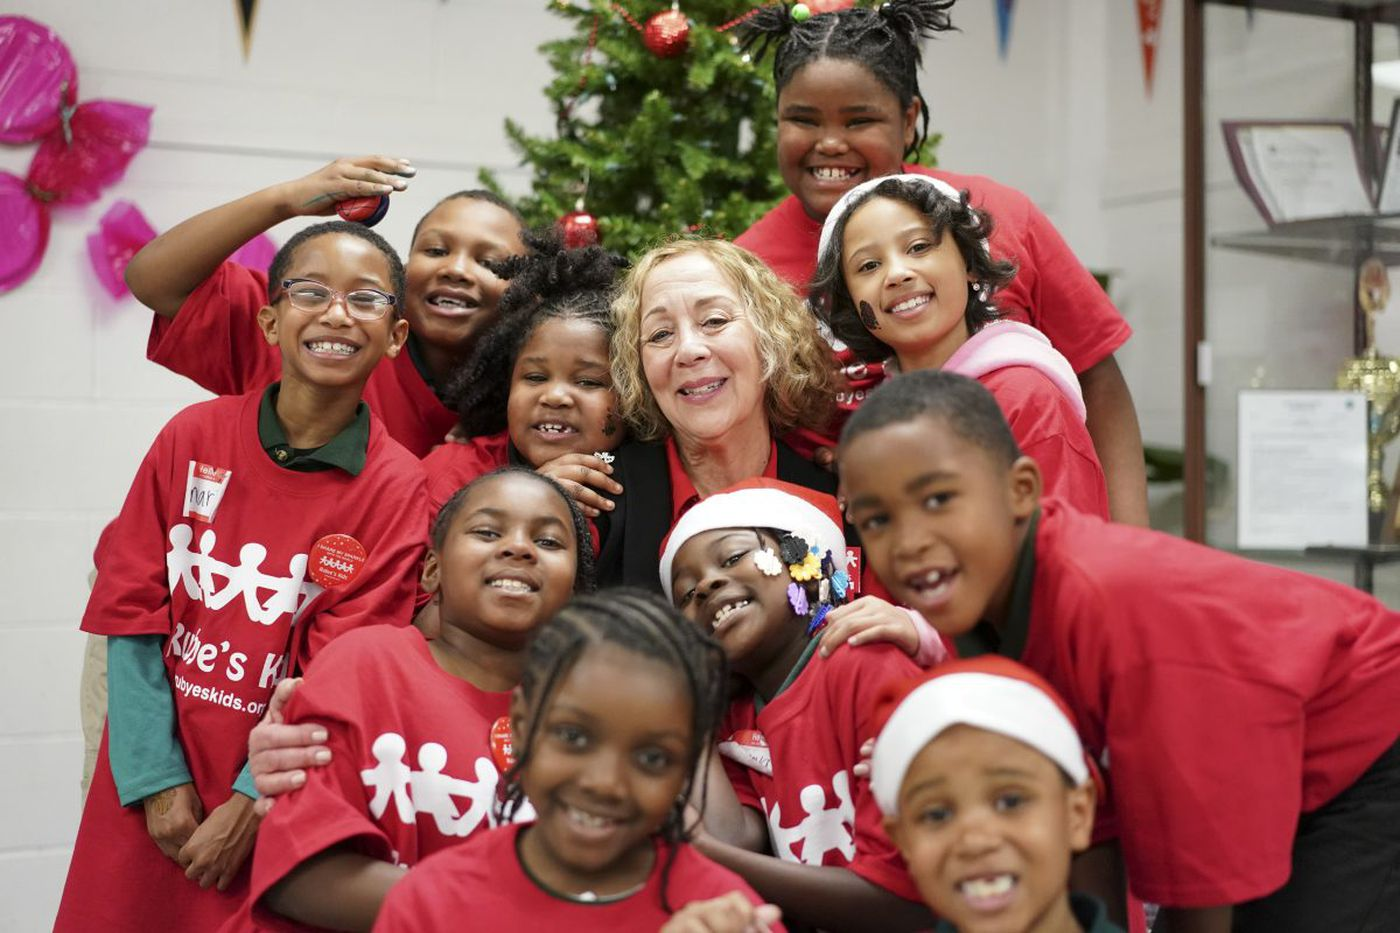 Santa, Spider-man and cheer: For one final time, holiday party thrown in N. Philly woman's honor